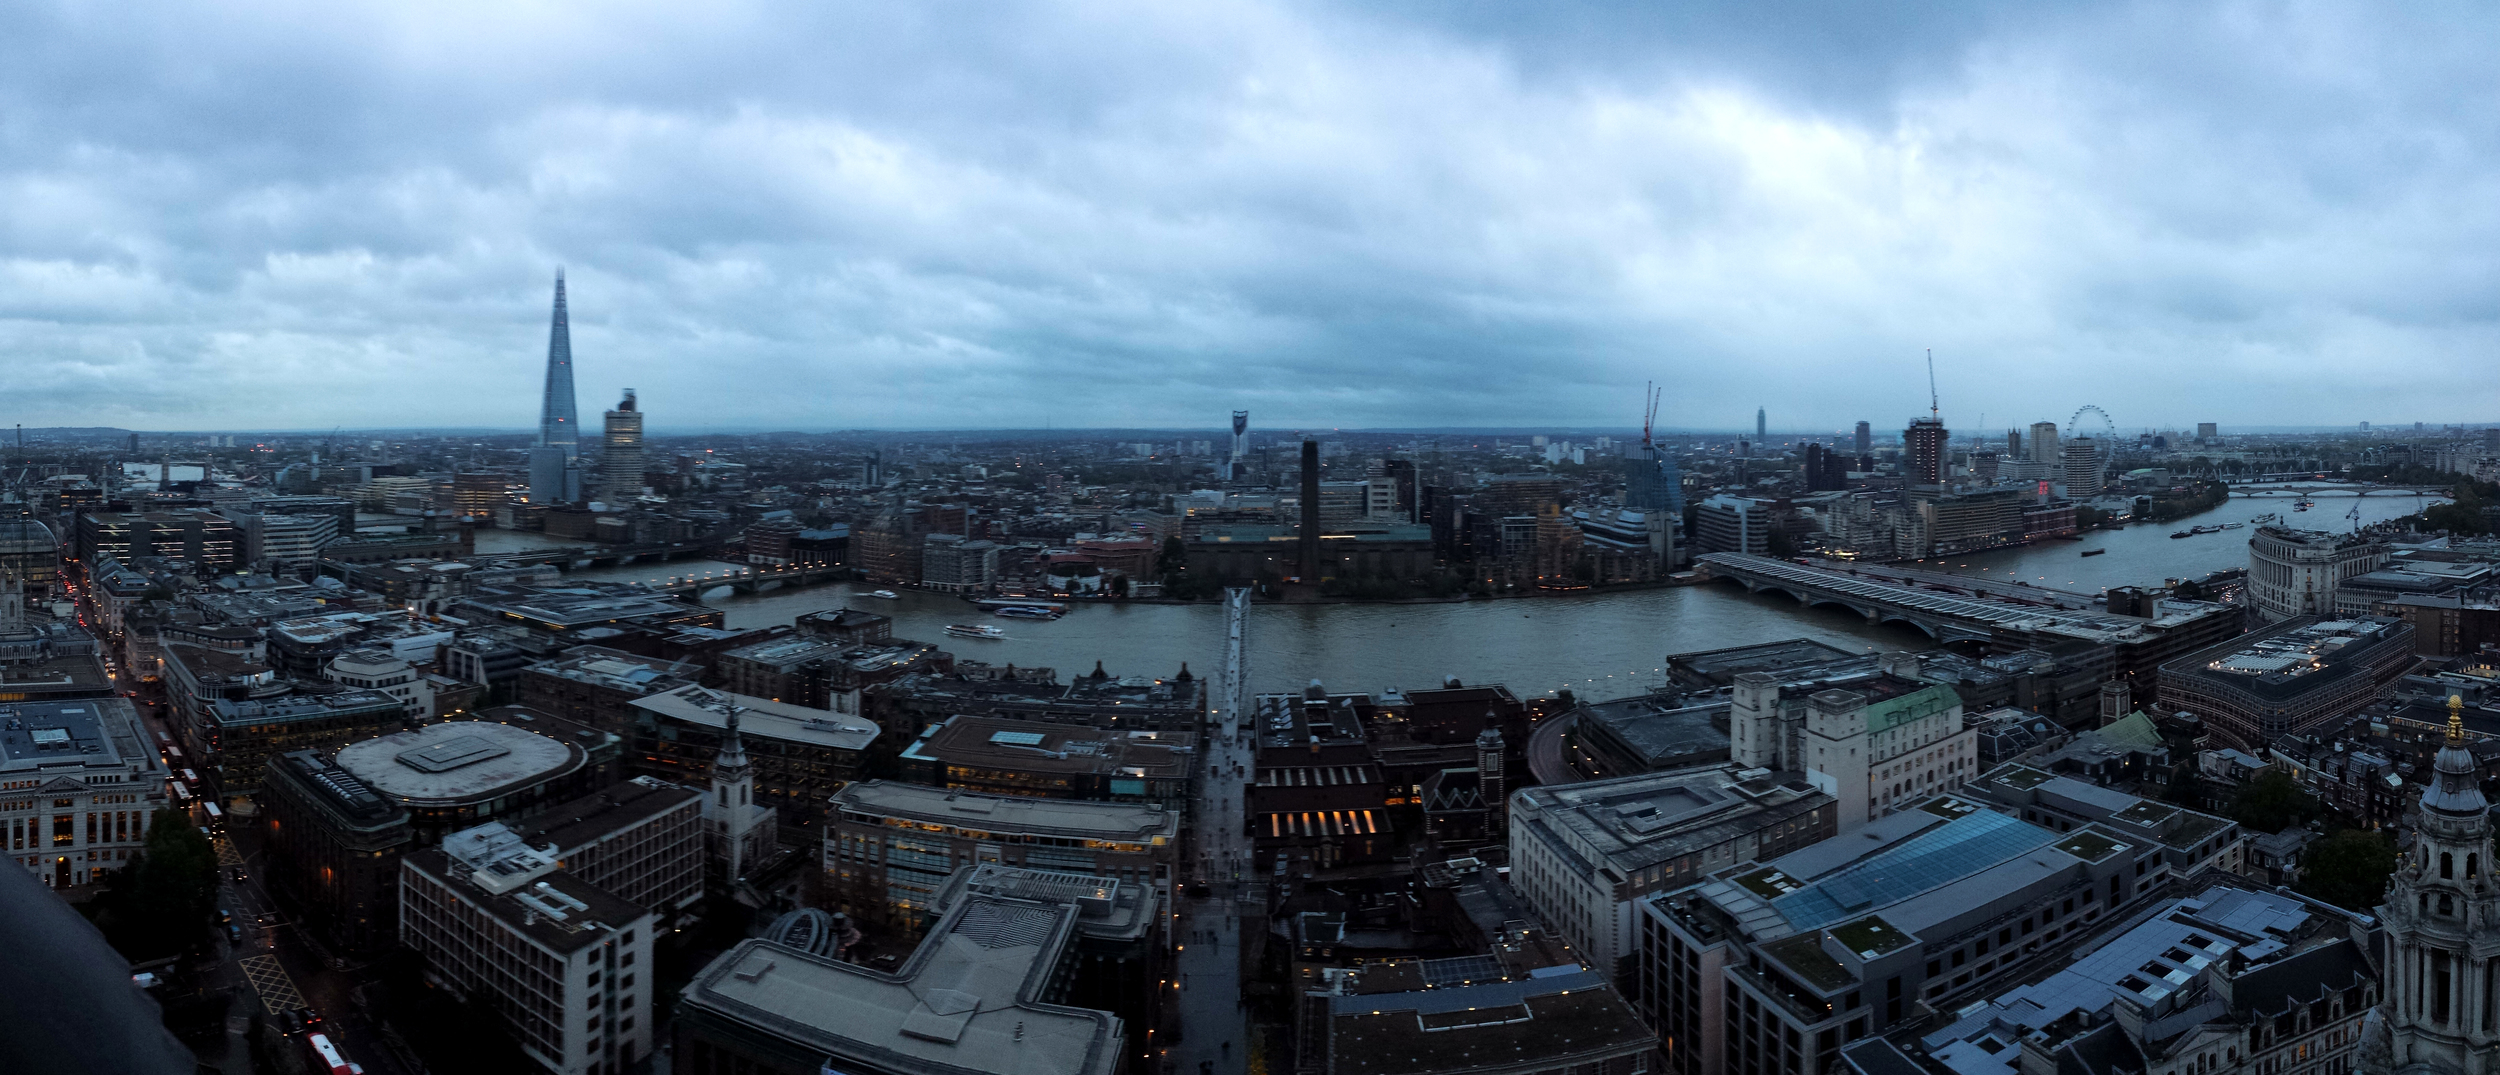 The View from St. Paul's